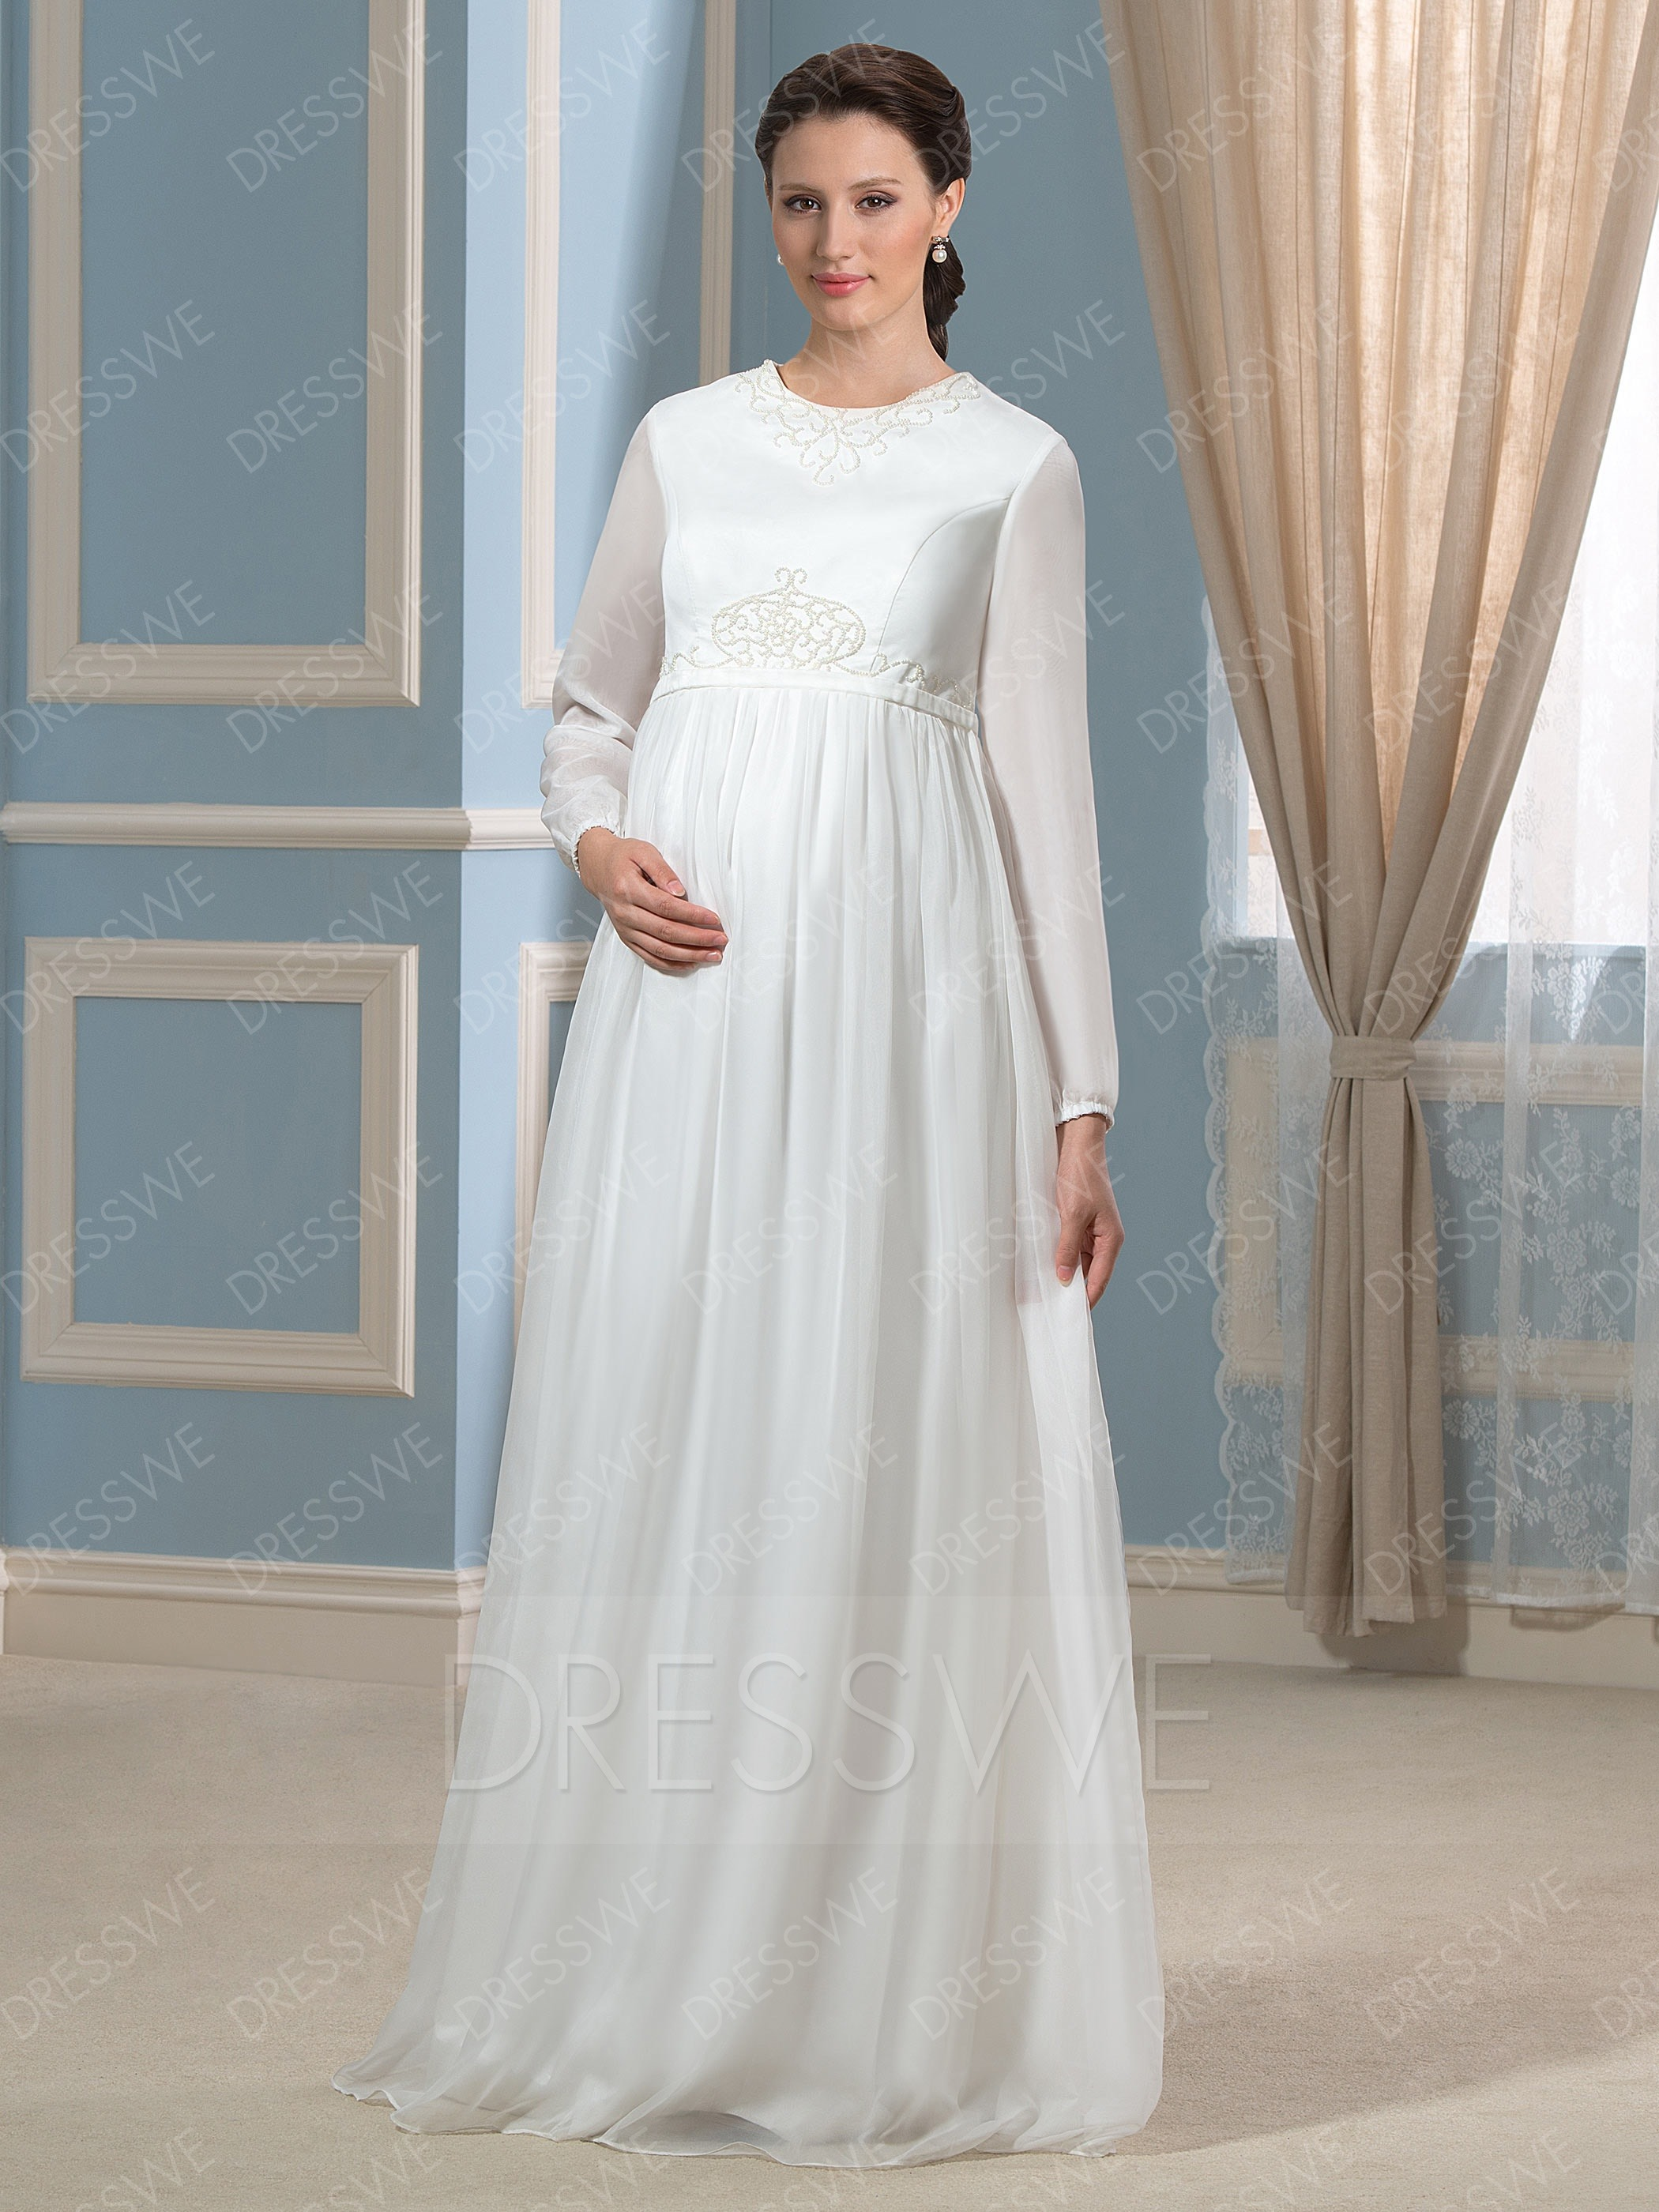 maternity wedding dresses picture: dresswe.com supplies modern scoop neck long sleeves zipper-up maternity  wedding dress maternity ... EMQOJOF